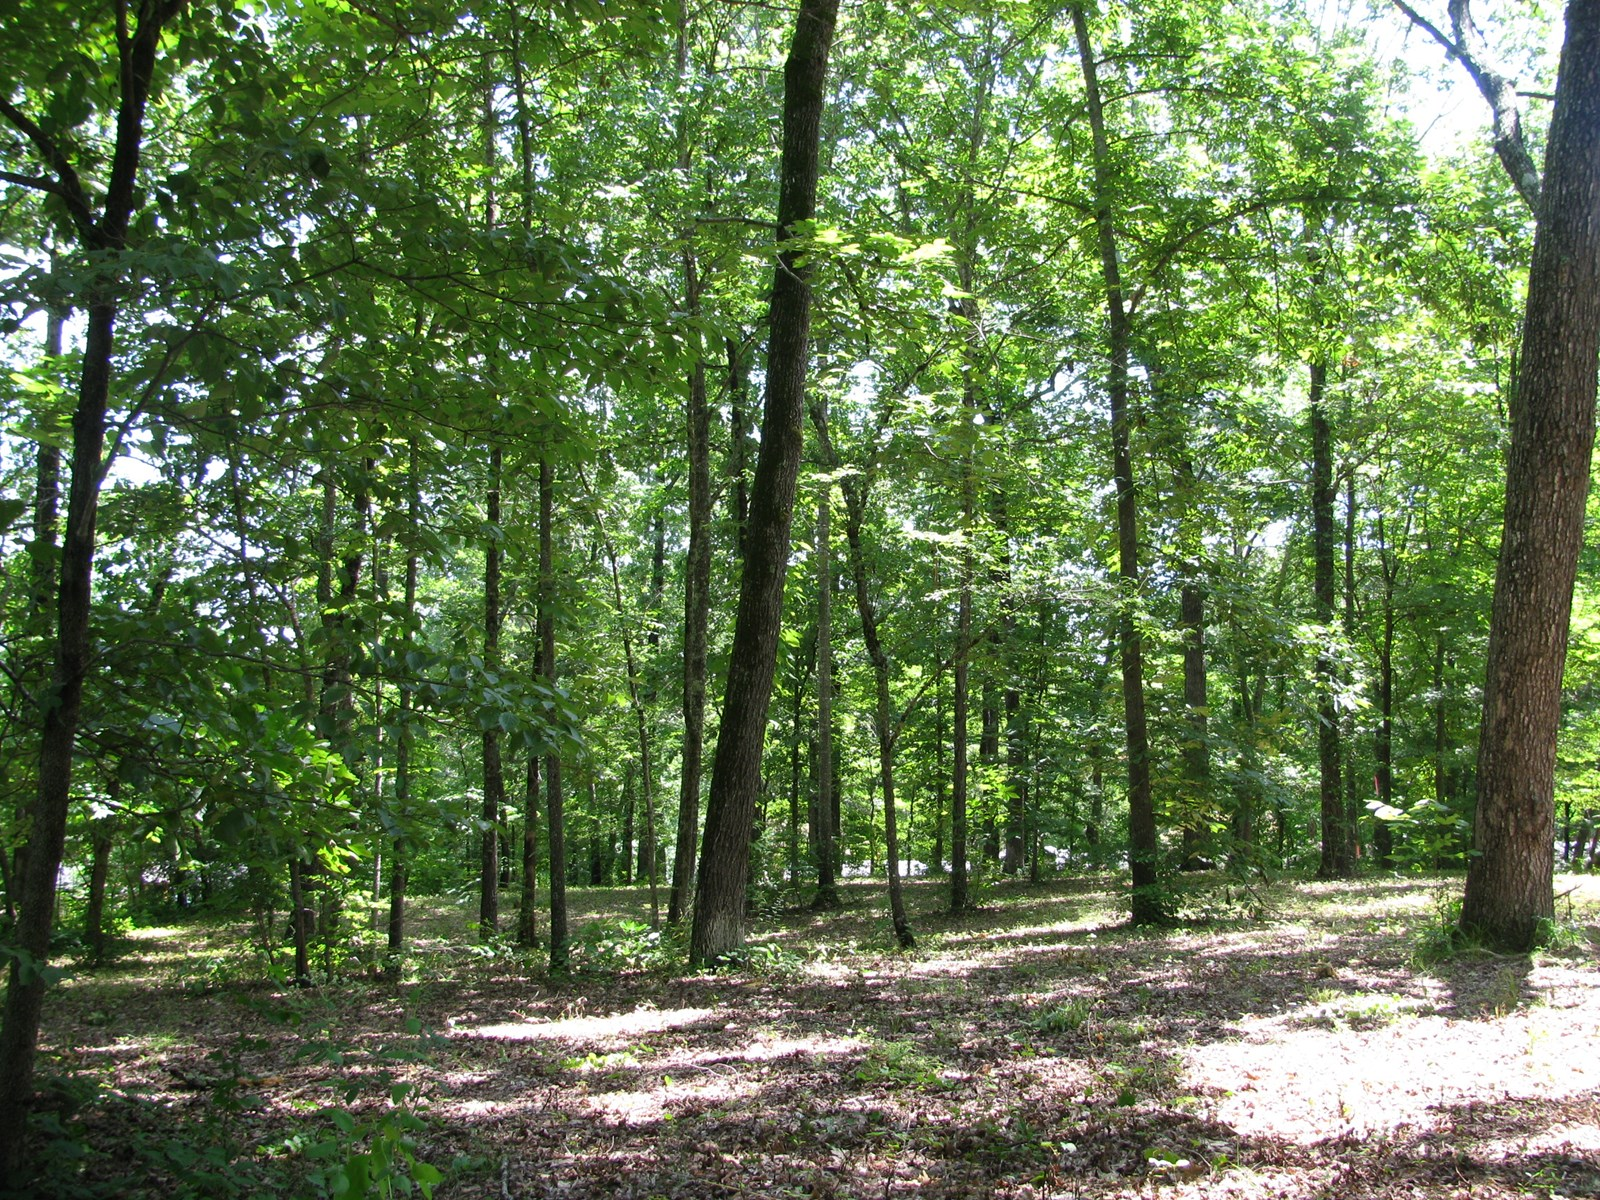 LOT FOR SALE IN ADAMSVILLE TN, DICKEY WOODS, LOT TO BUILD ON